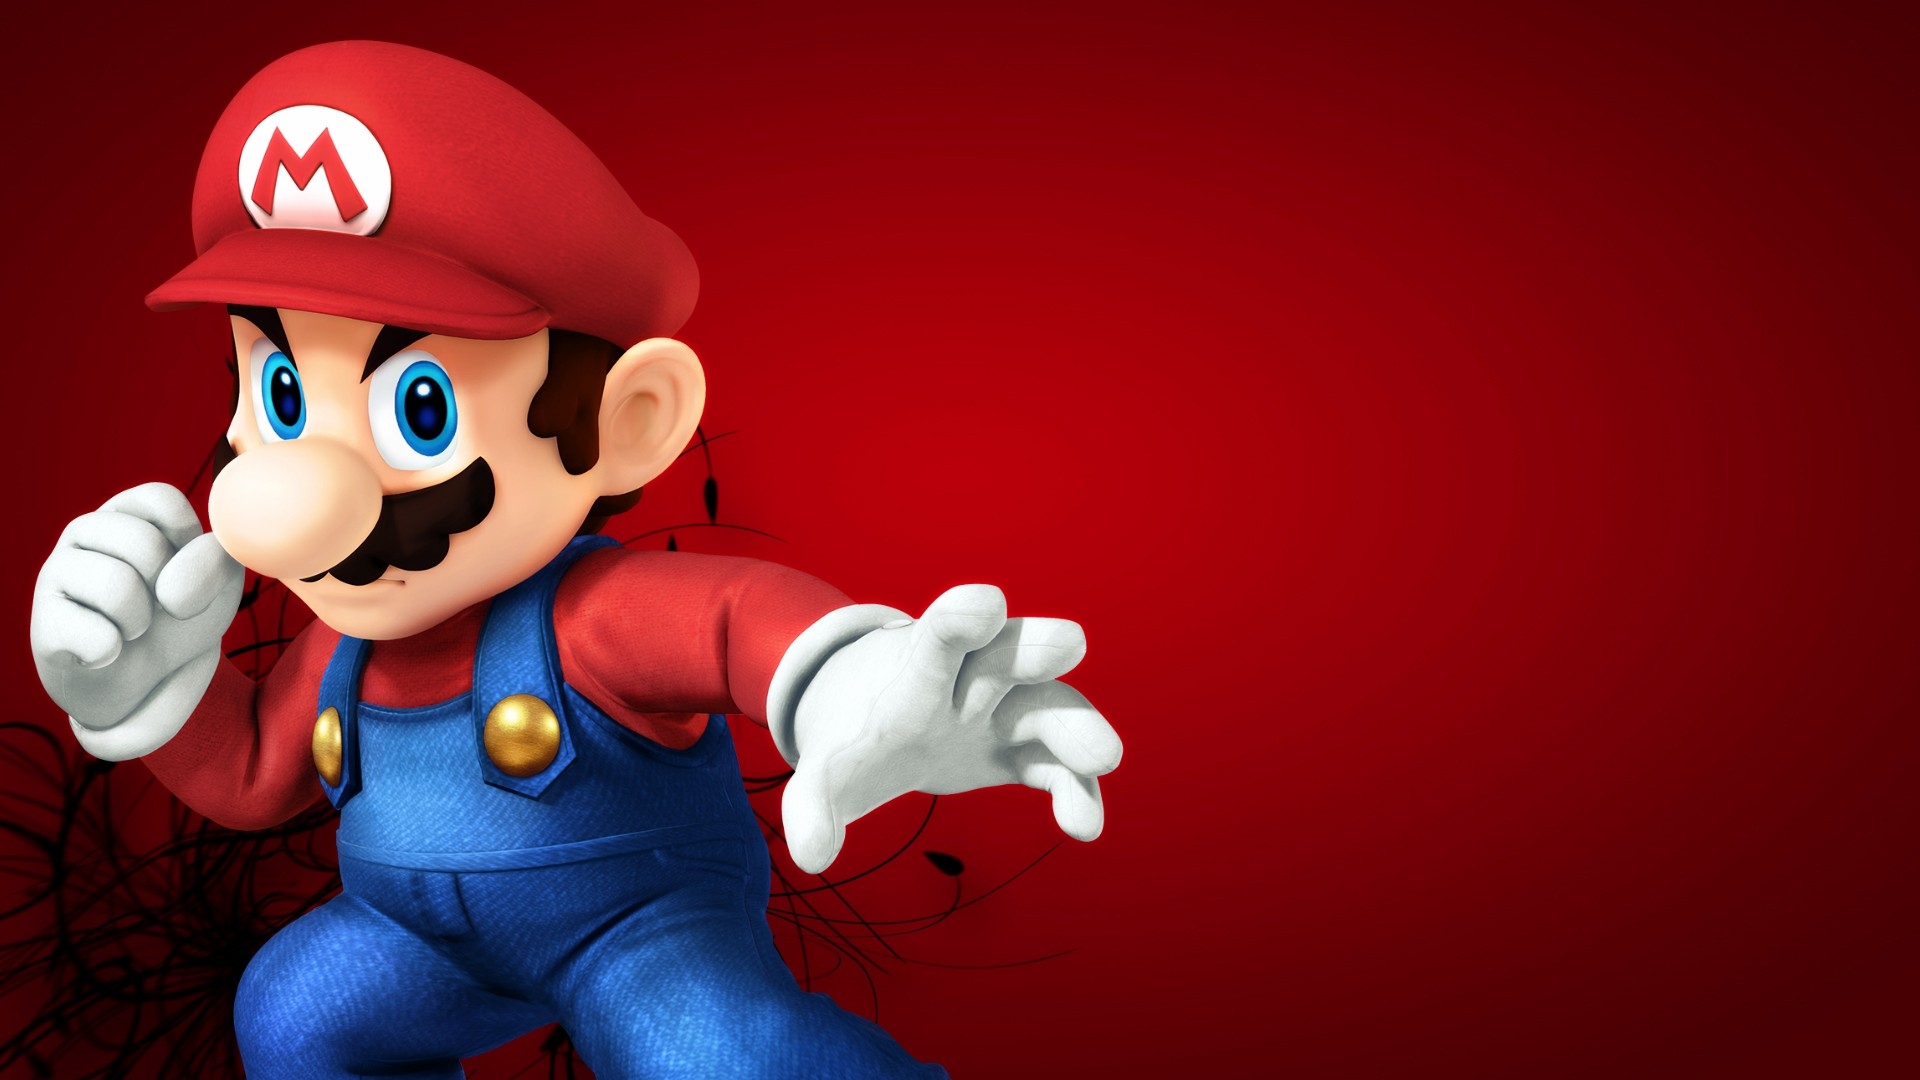 406468-super-mario-wallpaper-1920x1080-f